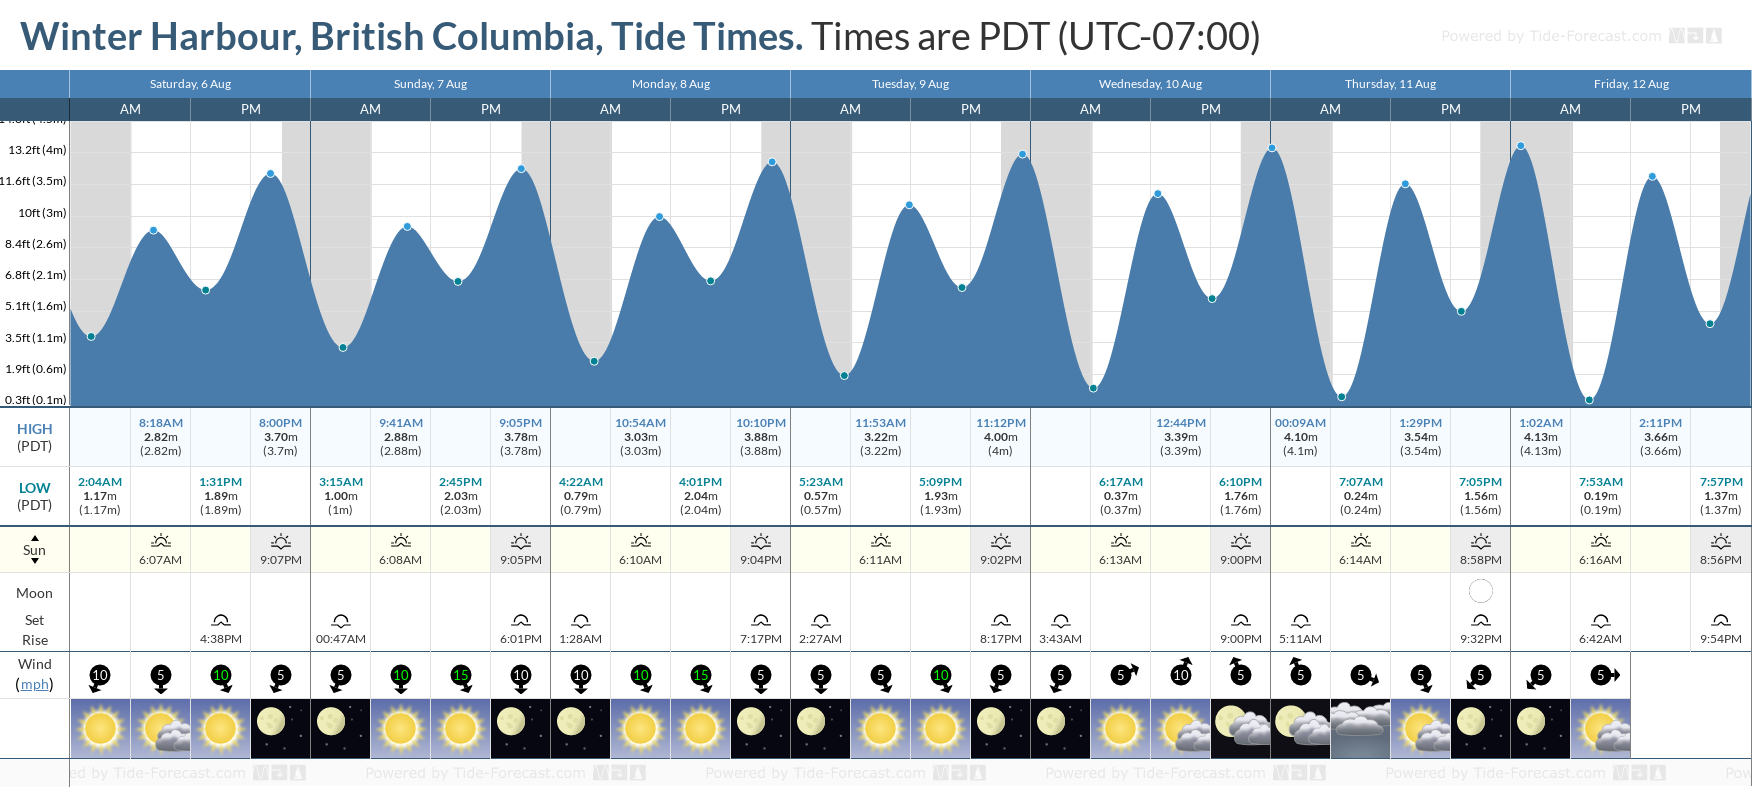 Winter Harbour, British Columbia Tide Chart including high and low tide tide times for the next 7 days